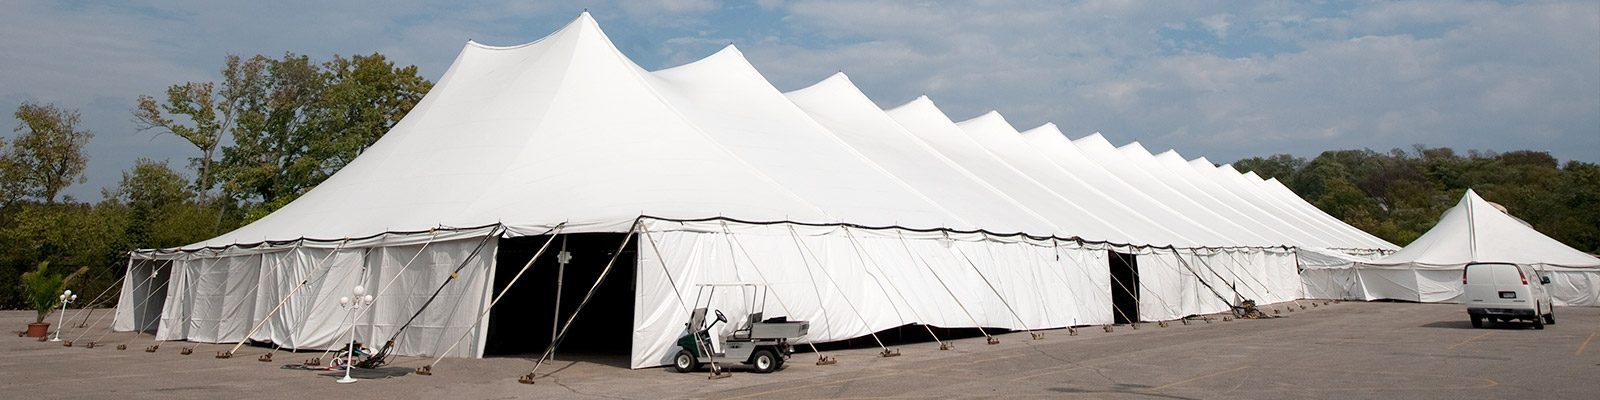 Tent Rental Guide - Choose the Right Tent | Arena Americas